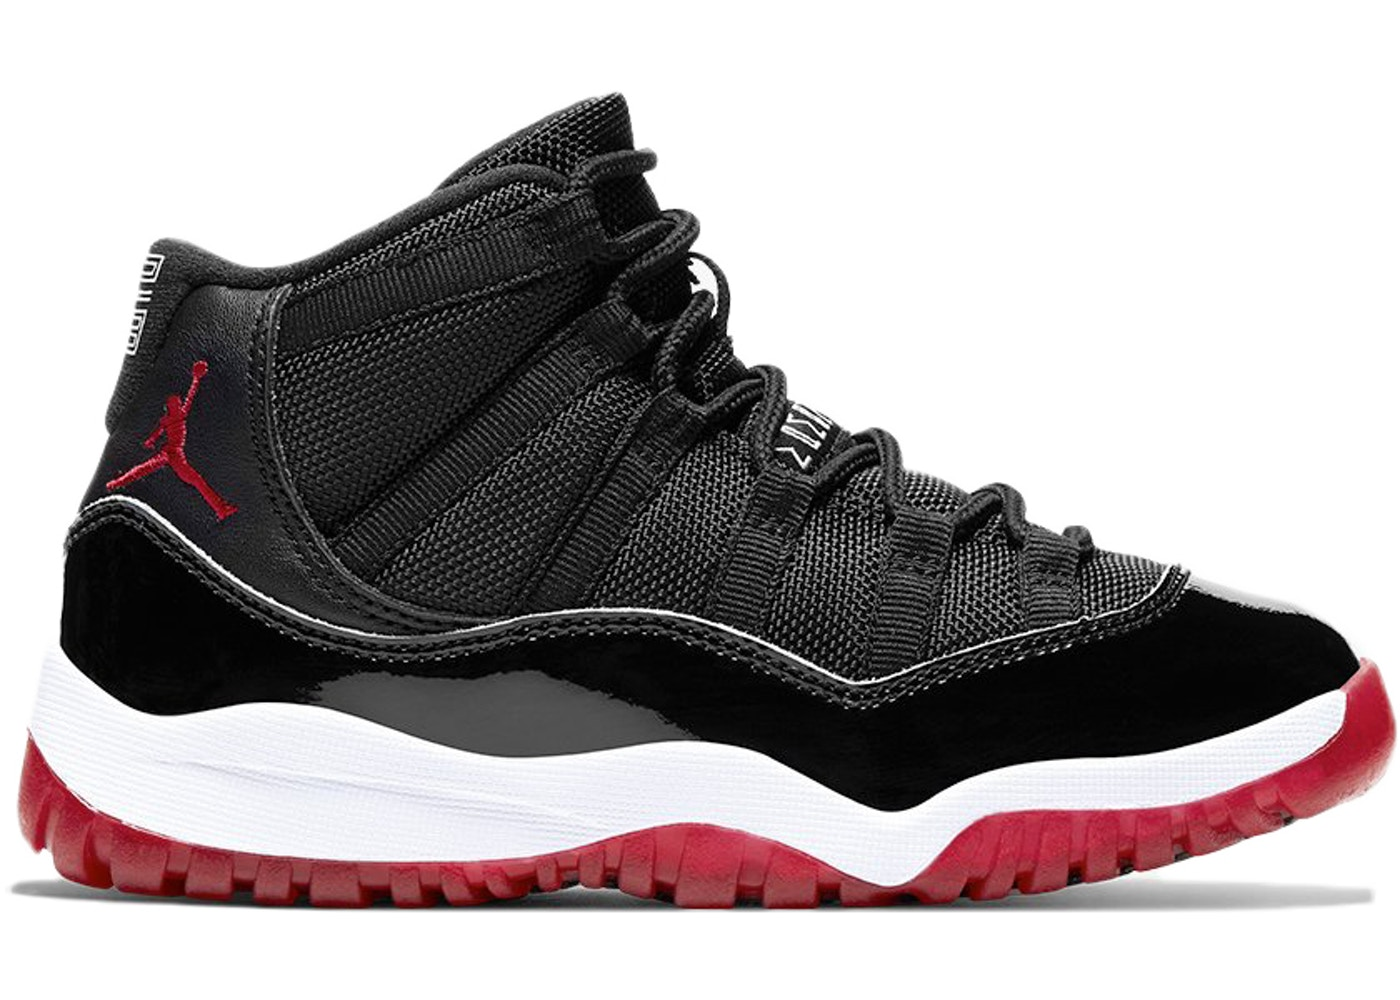 Jordan 11 Retro Playoffs Bred 2019 Ps 378039 061